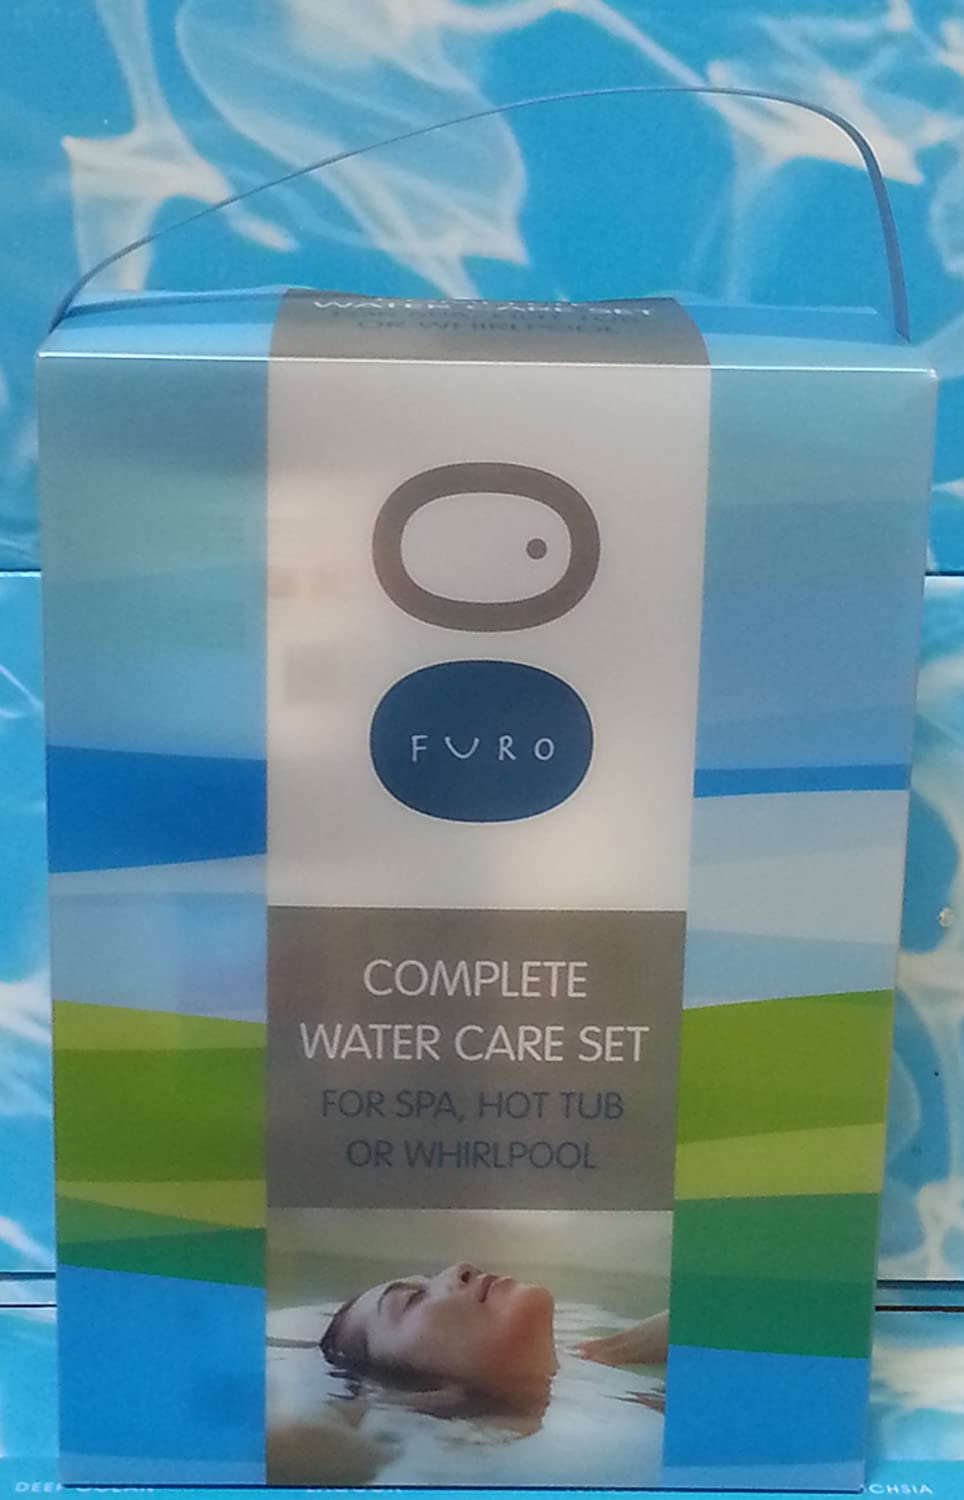 Complete Water Care Kit for Spa, Hot Tub or Jacuzzi: Amazon.co.uk ...